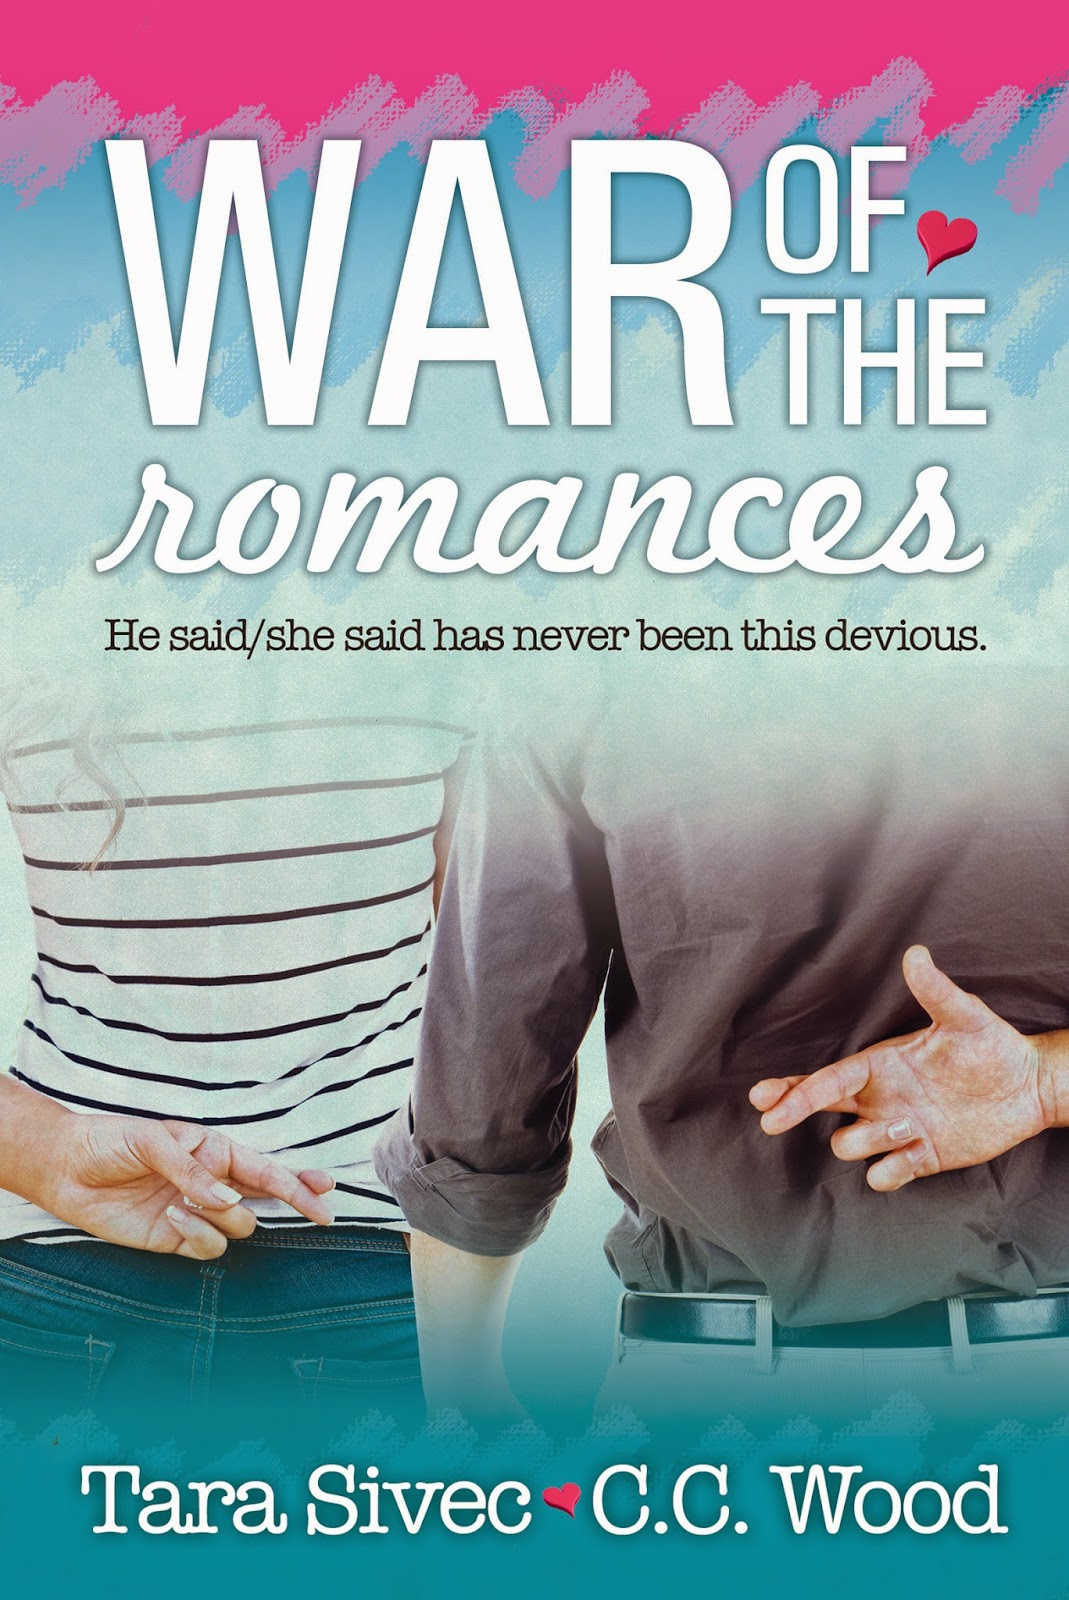 war of the romances by tara sivec and c.c. wood